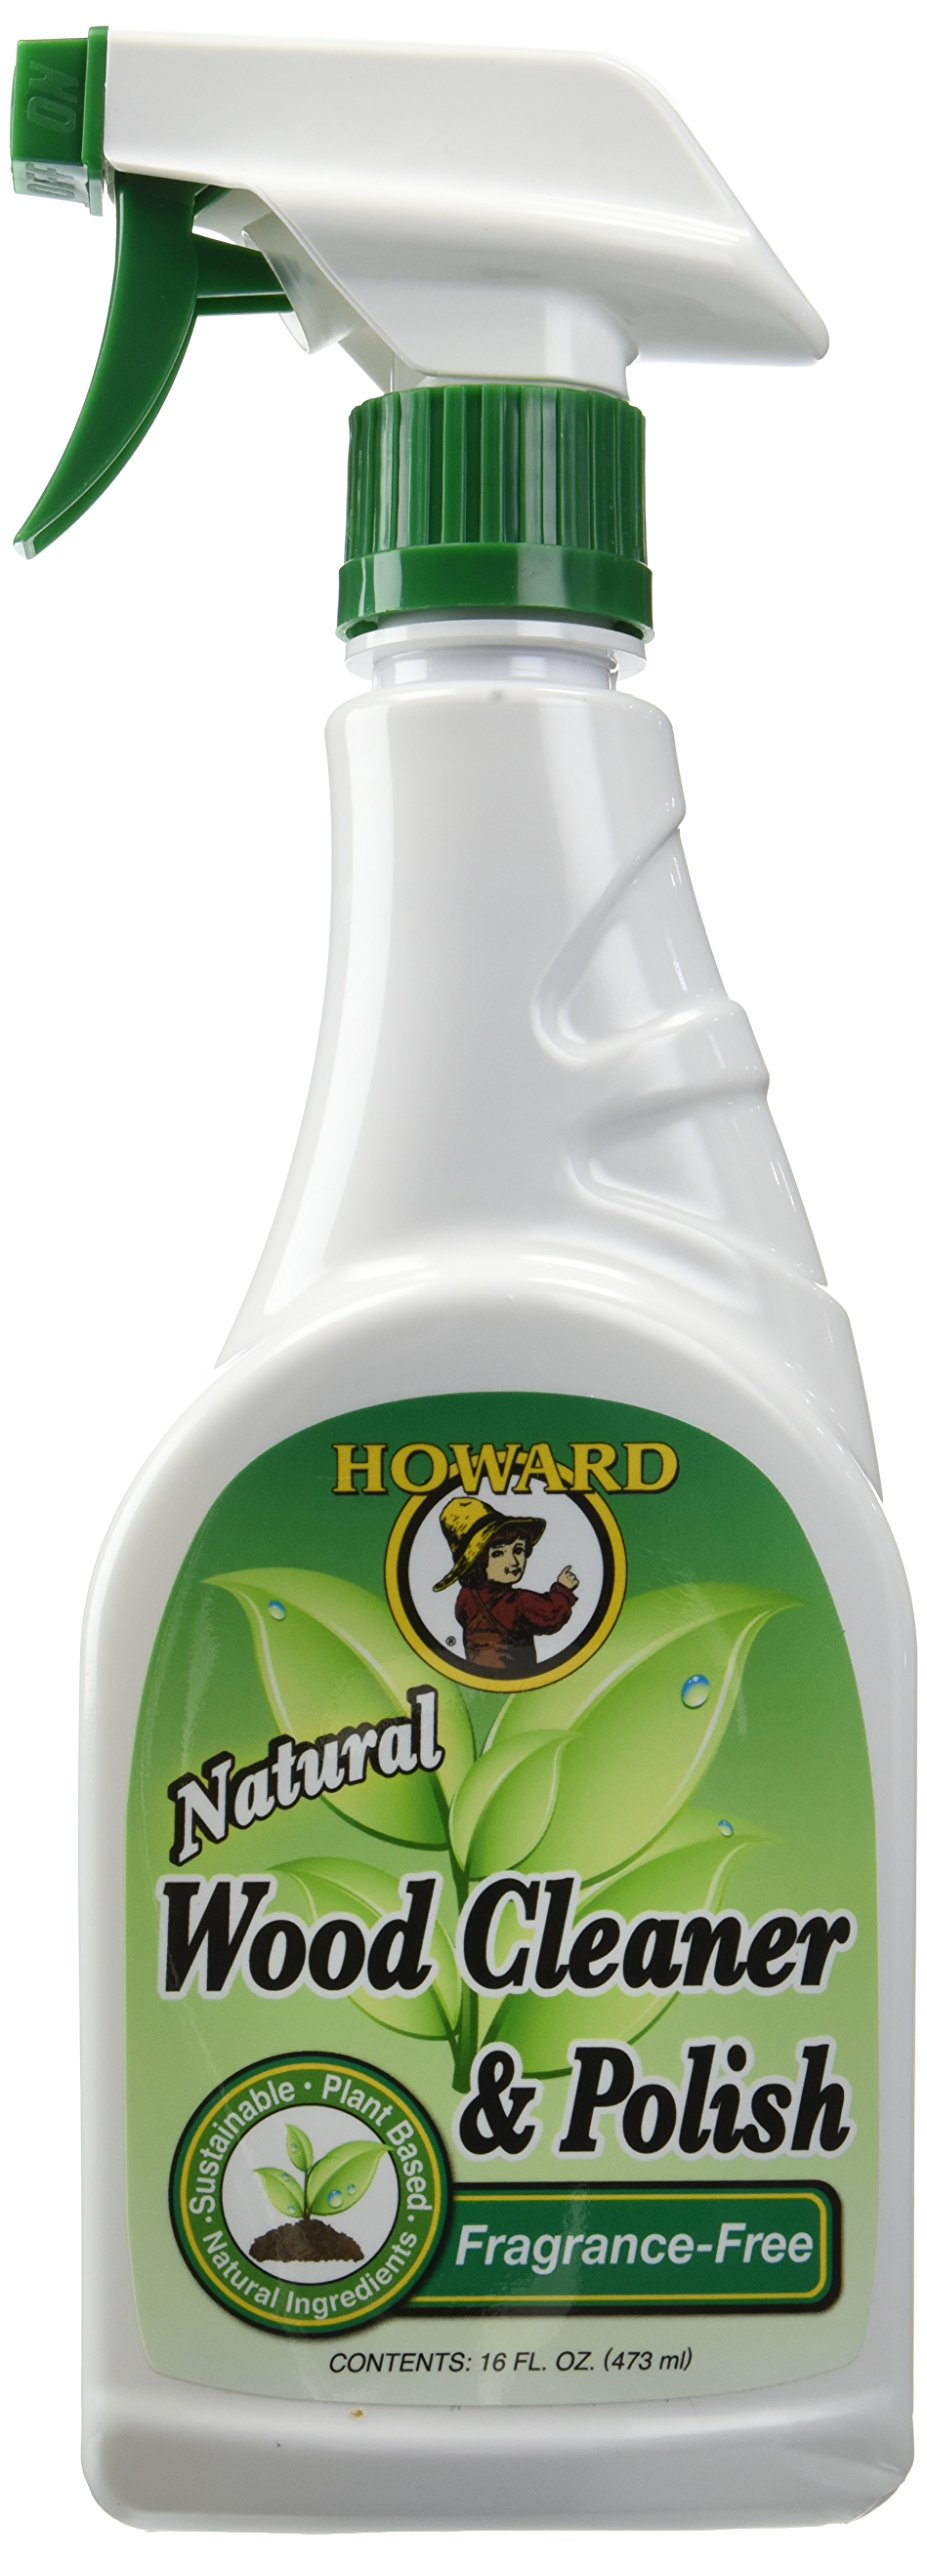 Howard Products Natural Stainless Steel Cleaner Trigger Spray (2-Pack, Fragrance-Free)